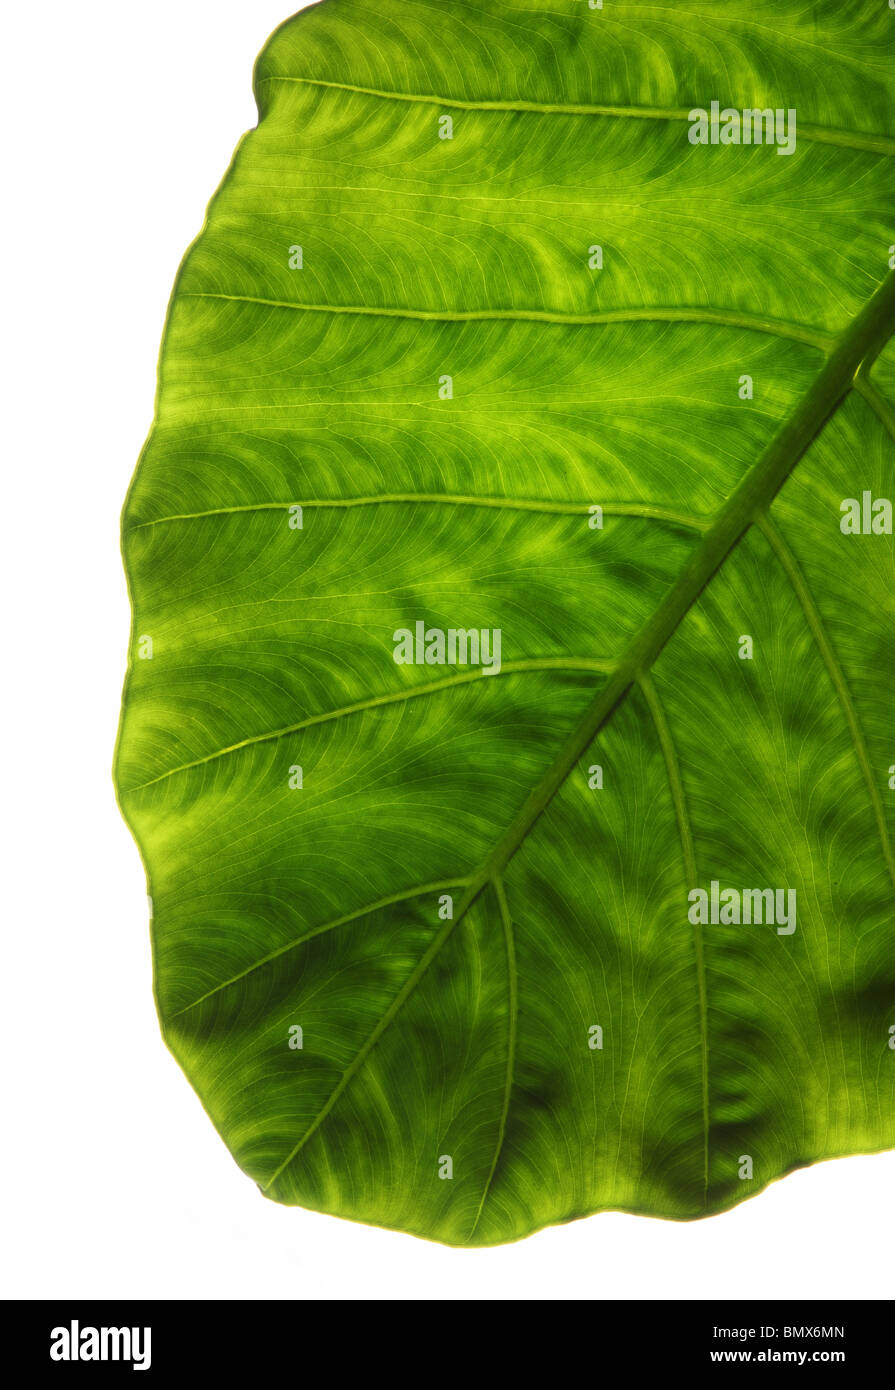 The end of a green plant leaf, white background - Stock Image